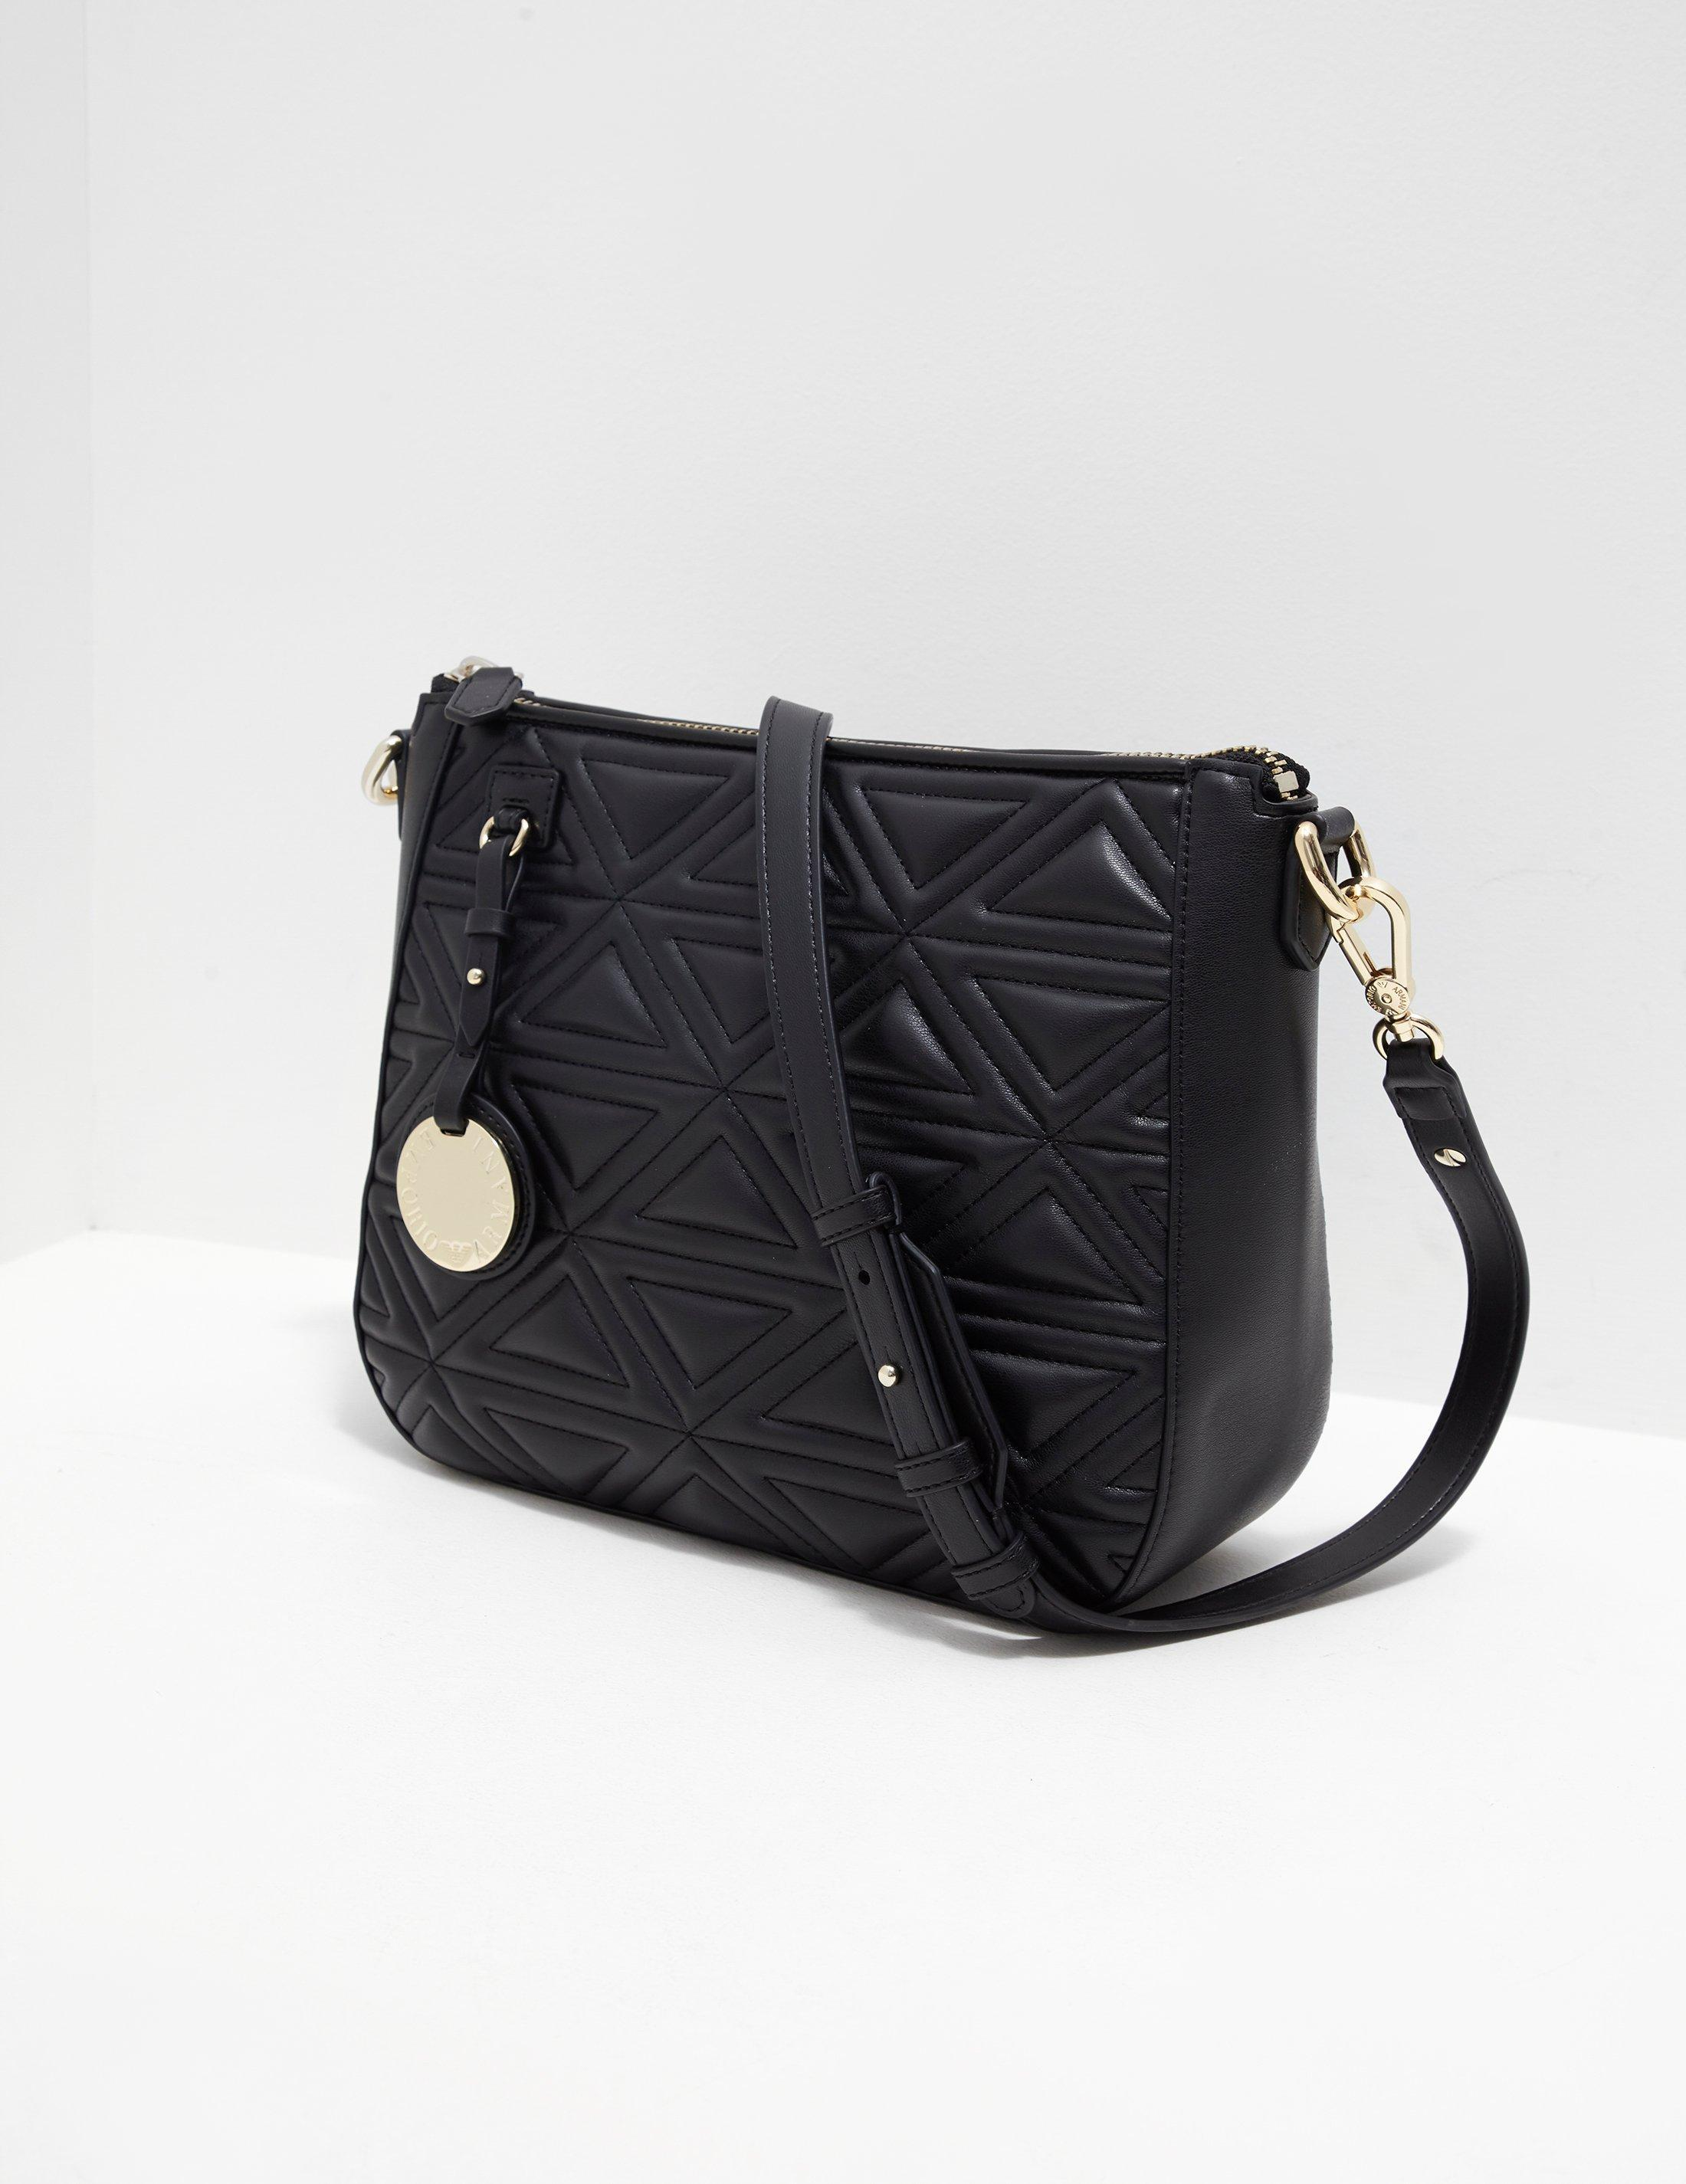 9a2cfa8d2c5f Lyst - Emporio Armani Womens Quilted Hobo Bag Black in Black